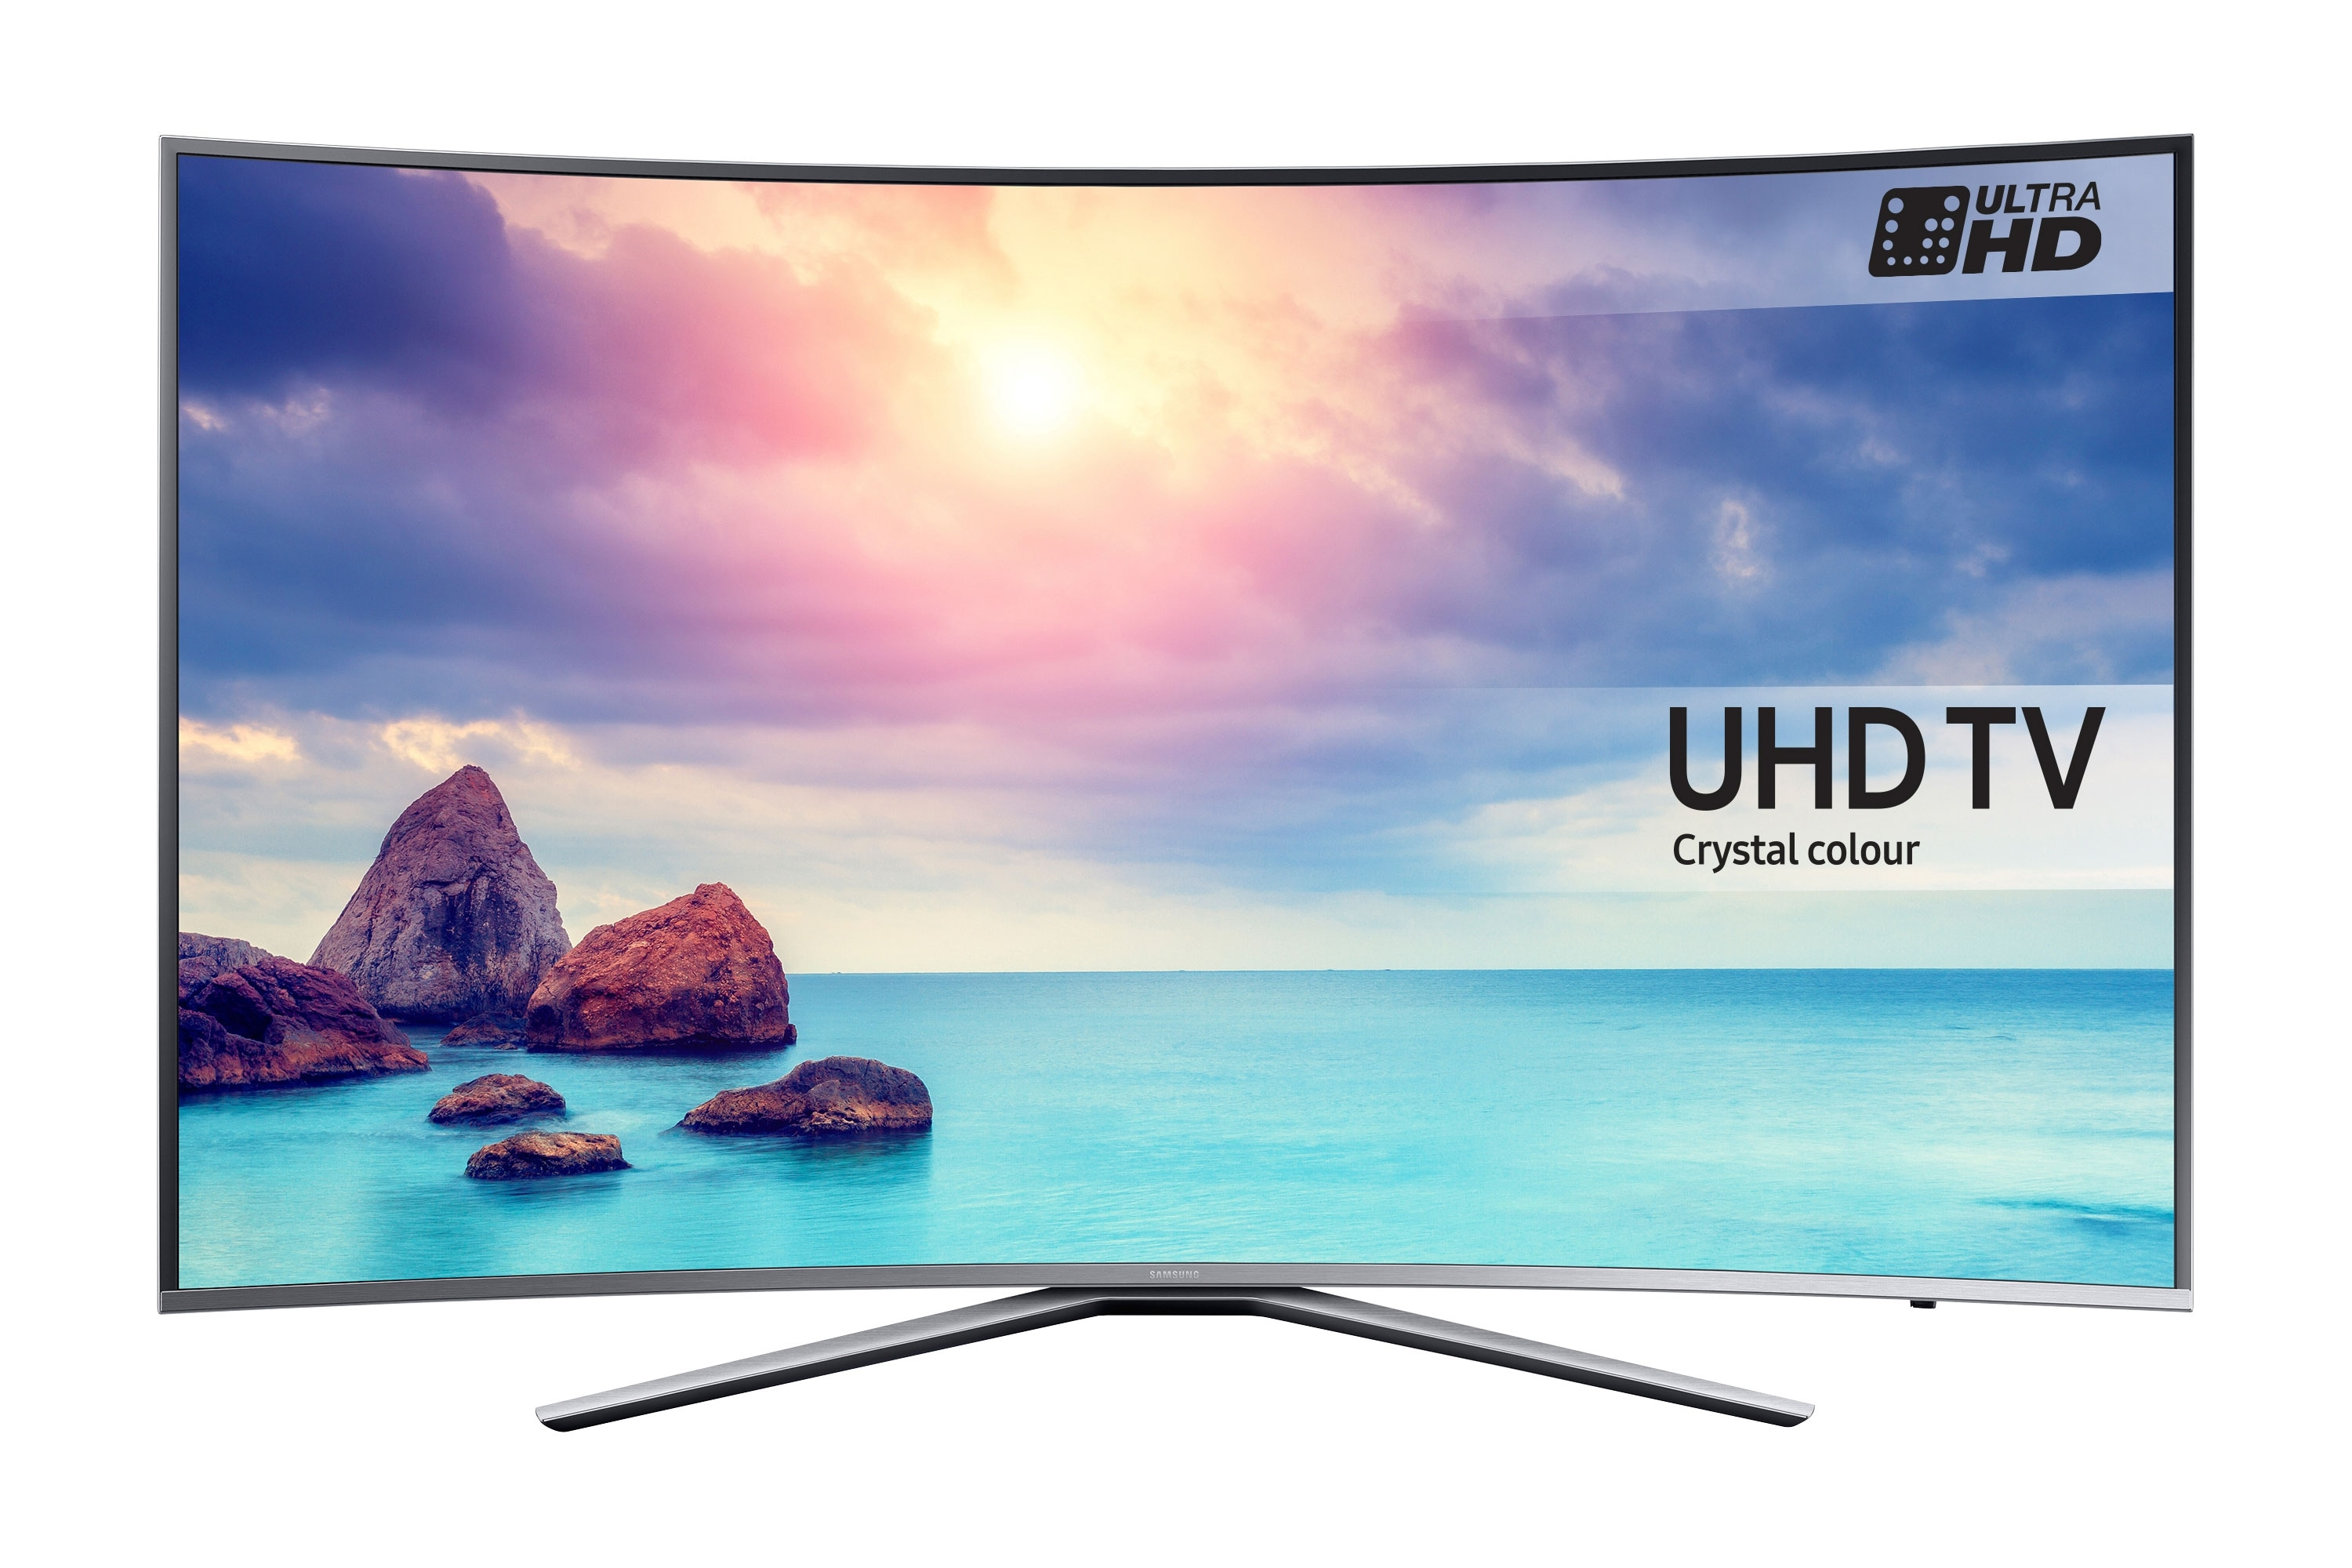 6-Series Curved UHD TV UE49KU6500